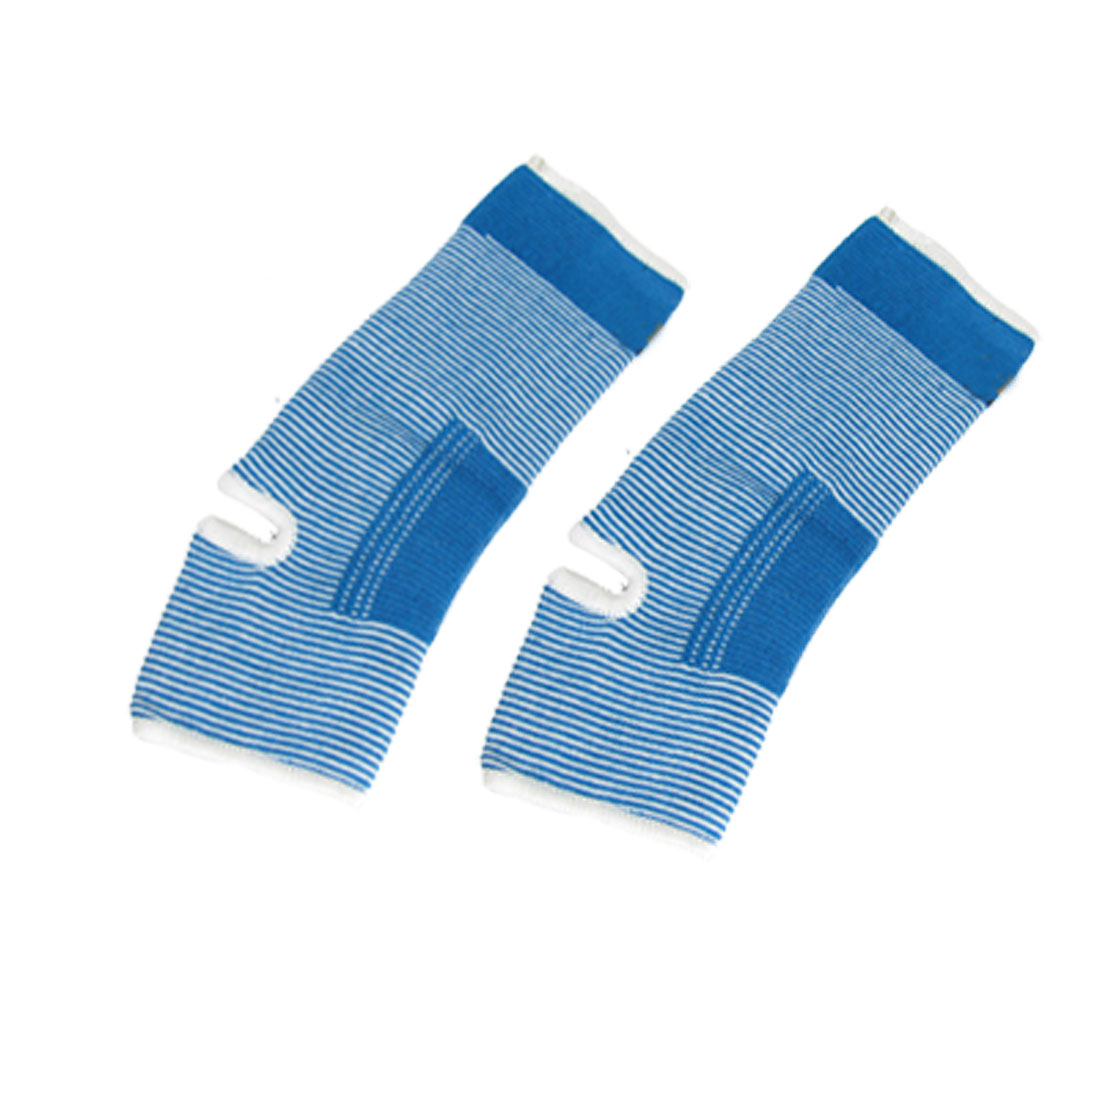 2 Pcs White Blue Striped Stretchy Ankle Support Guard